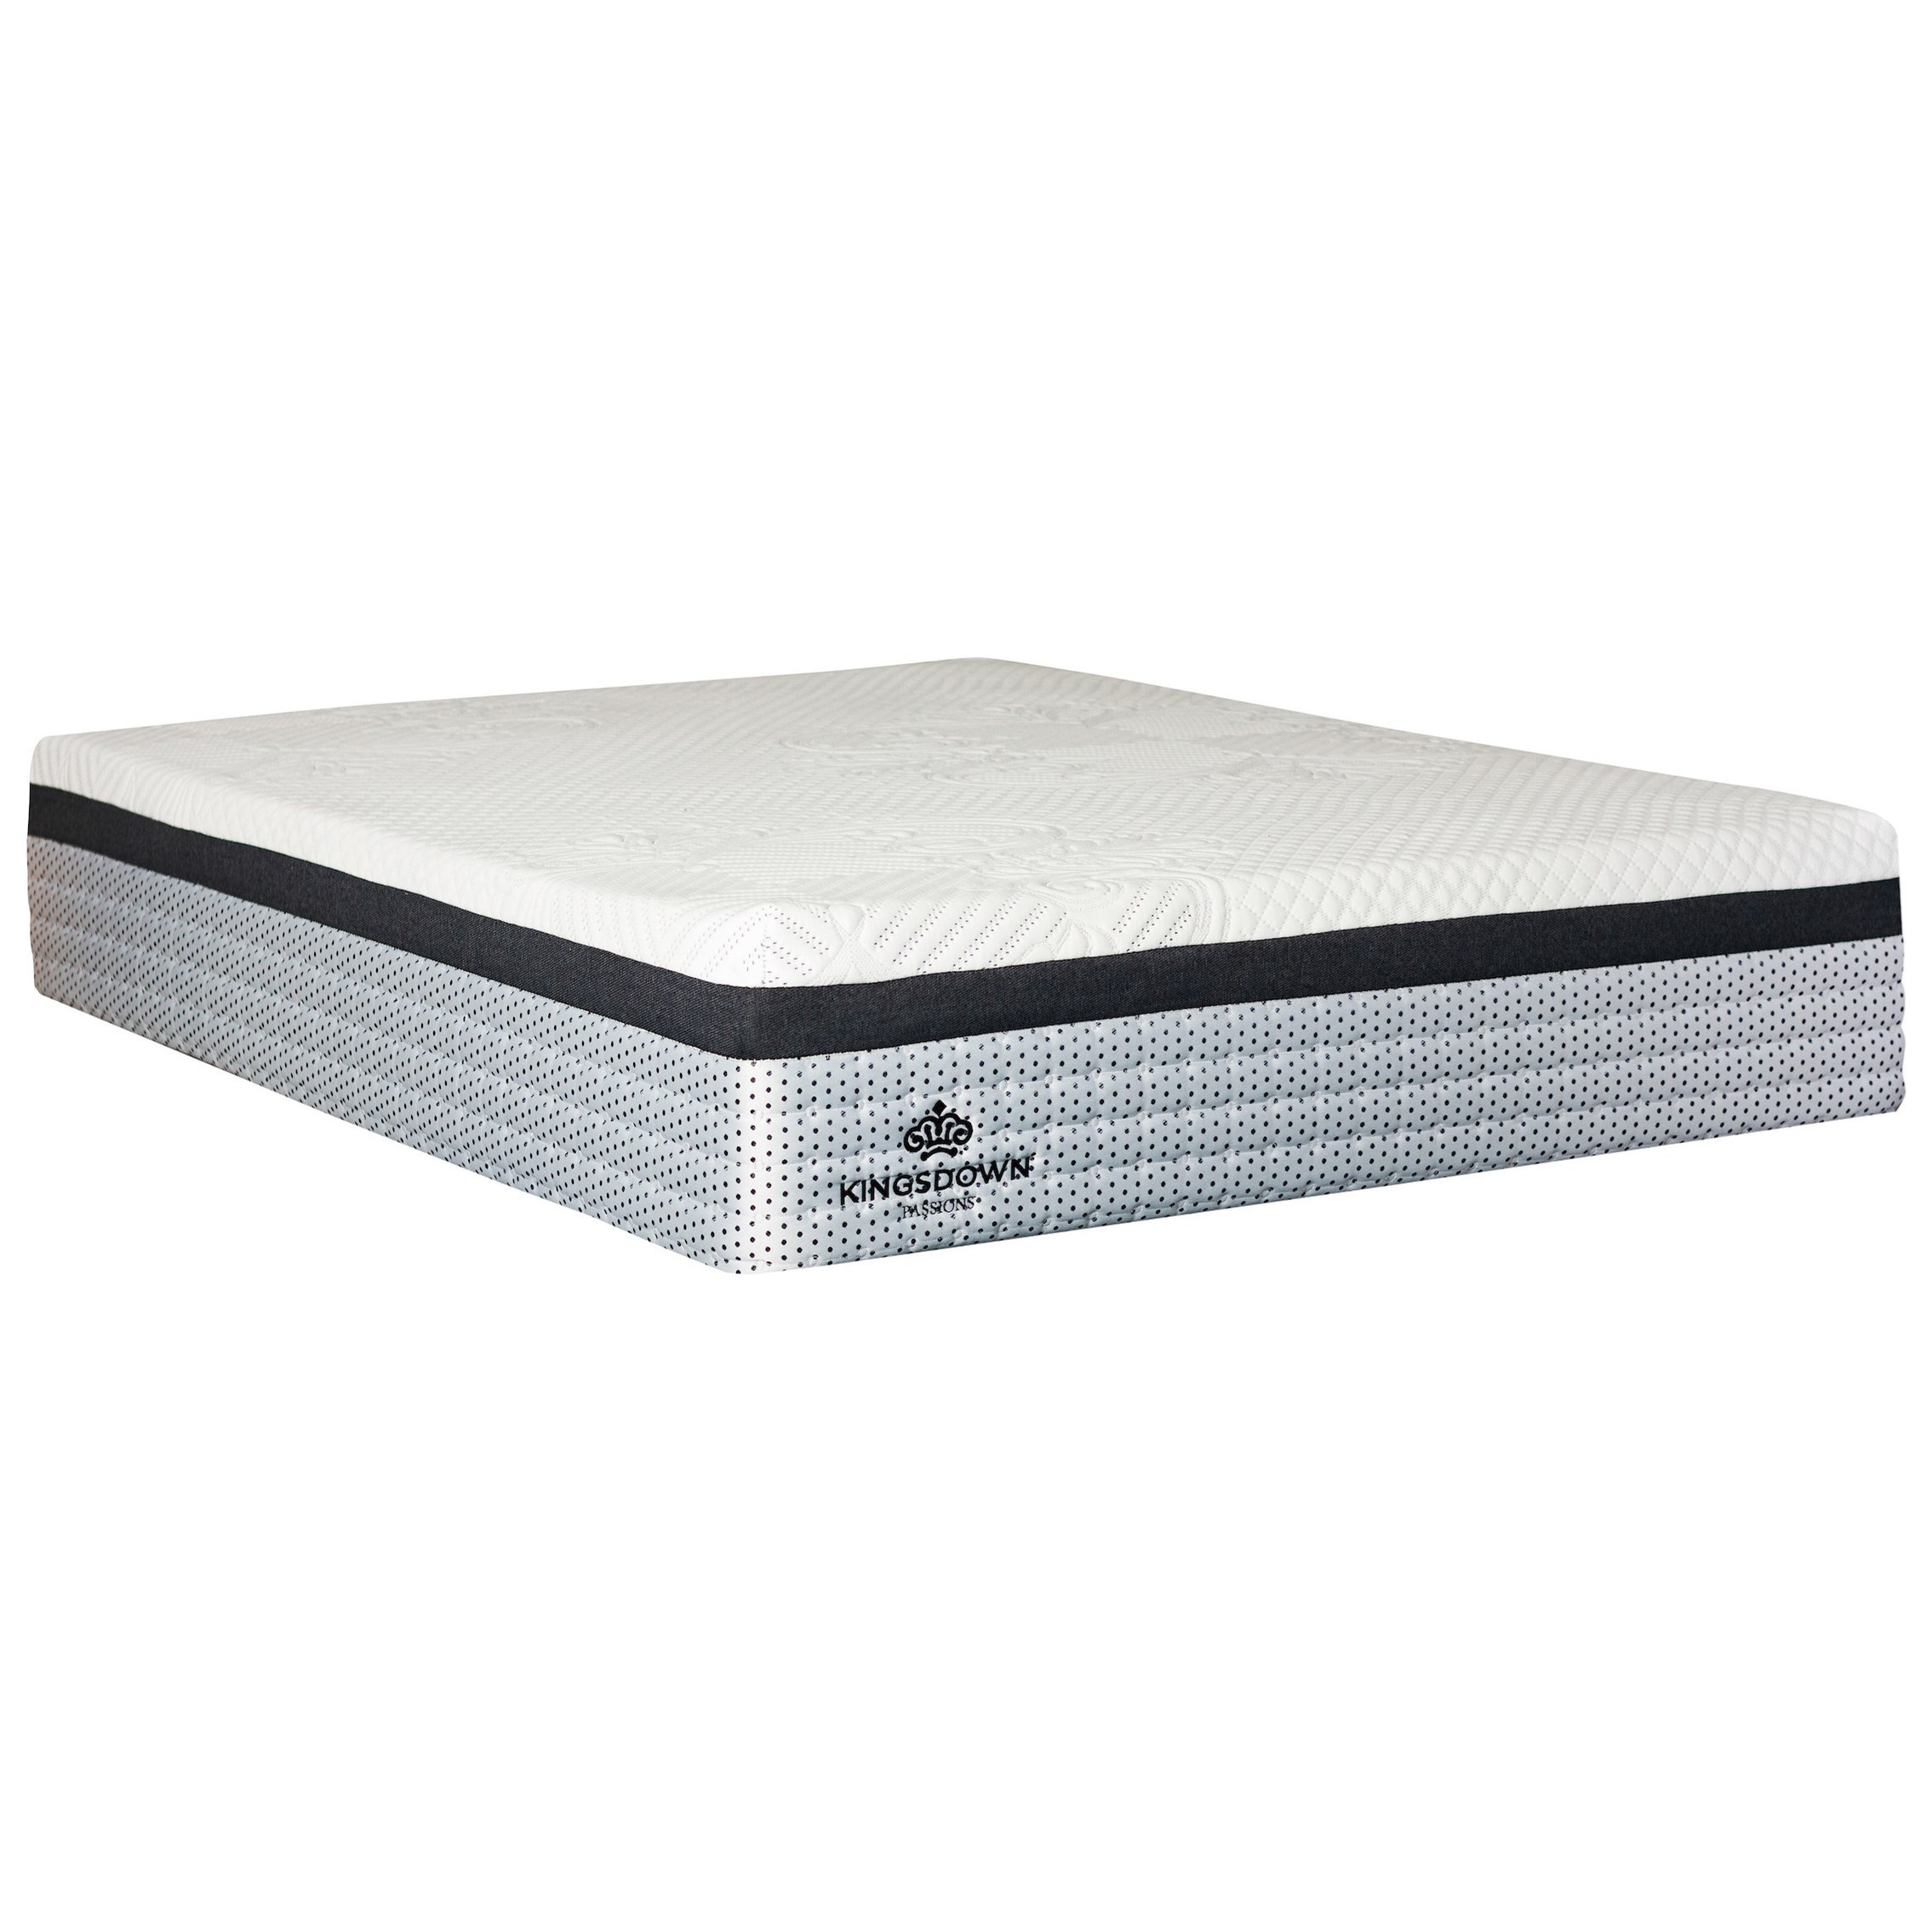 "Queen 14"" Hybrid Euro Top Mattress"